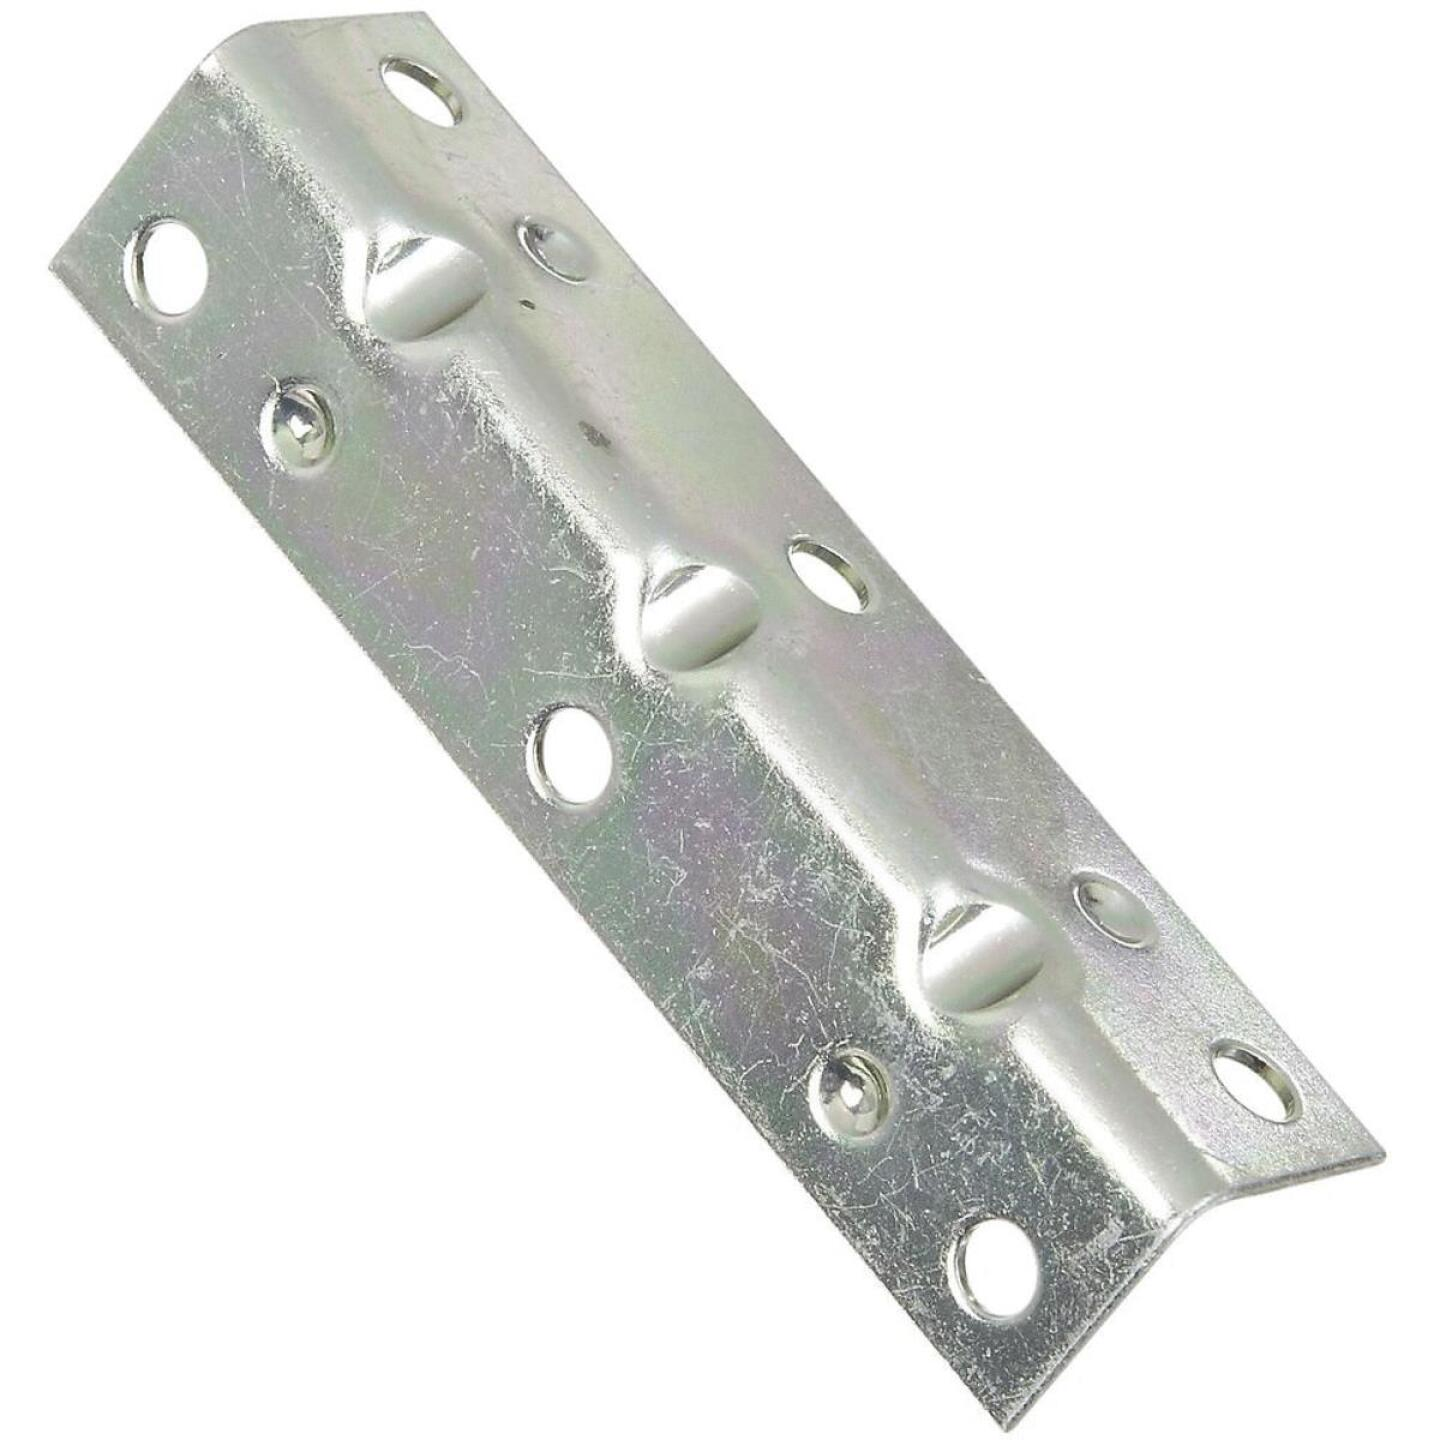 National Catalog V113 Series 3-1/2 In. x 3/4 In. Zinc Corner Brace (4-Count) Image 1